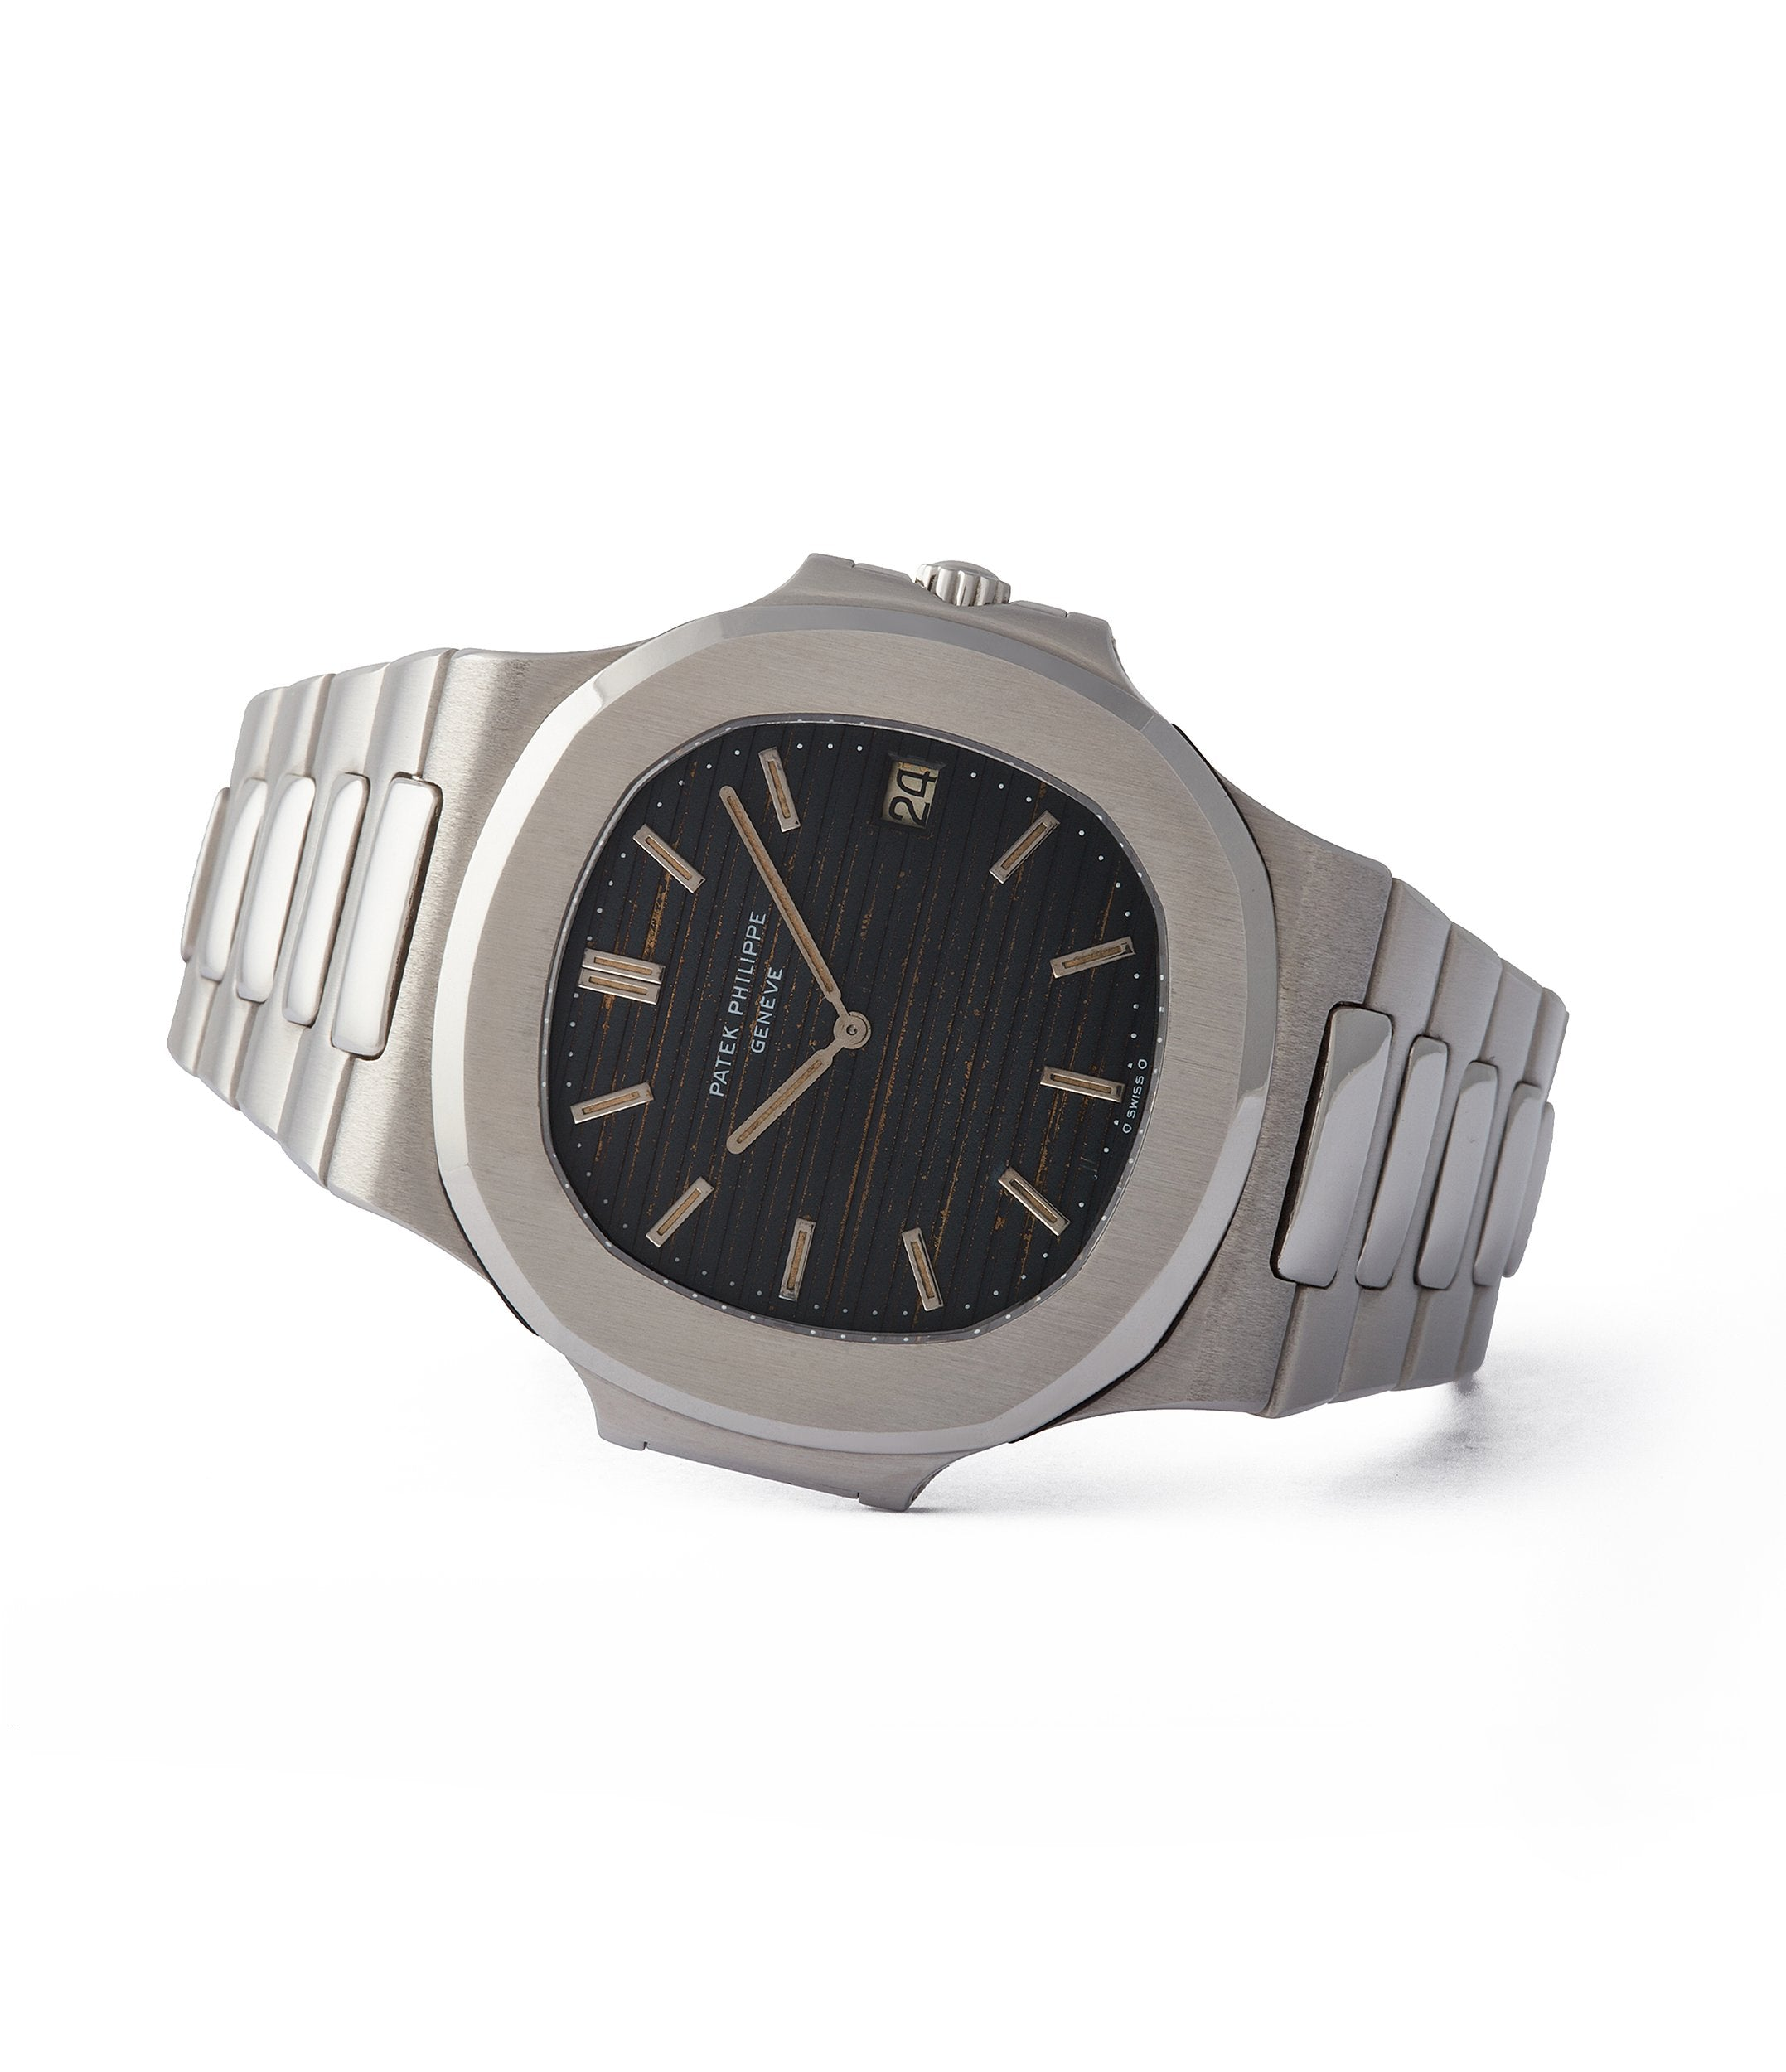 side-shot collect Patek Philippe Nautilus 3700/001A vintage steel tropical dial sports watch for sale online A Collected Man London UK specialist rare watches